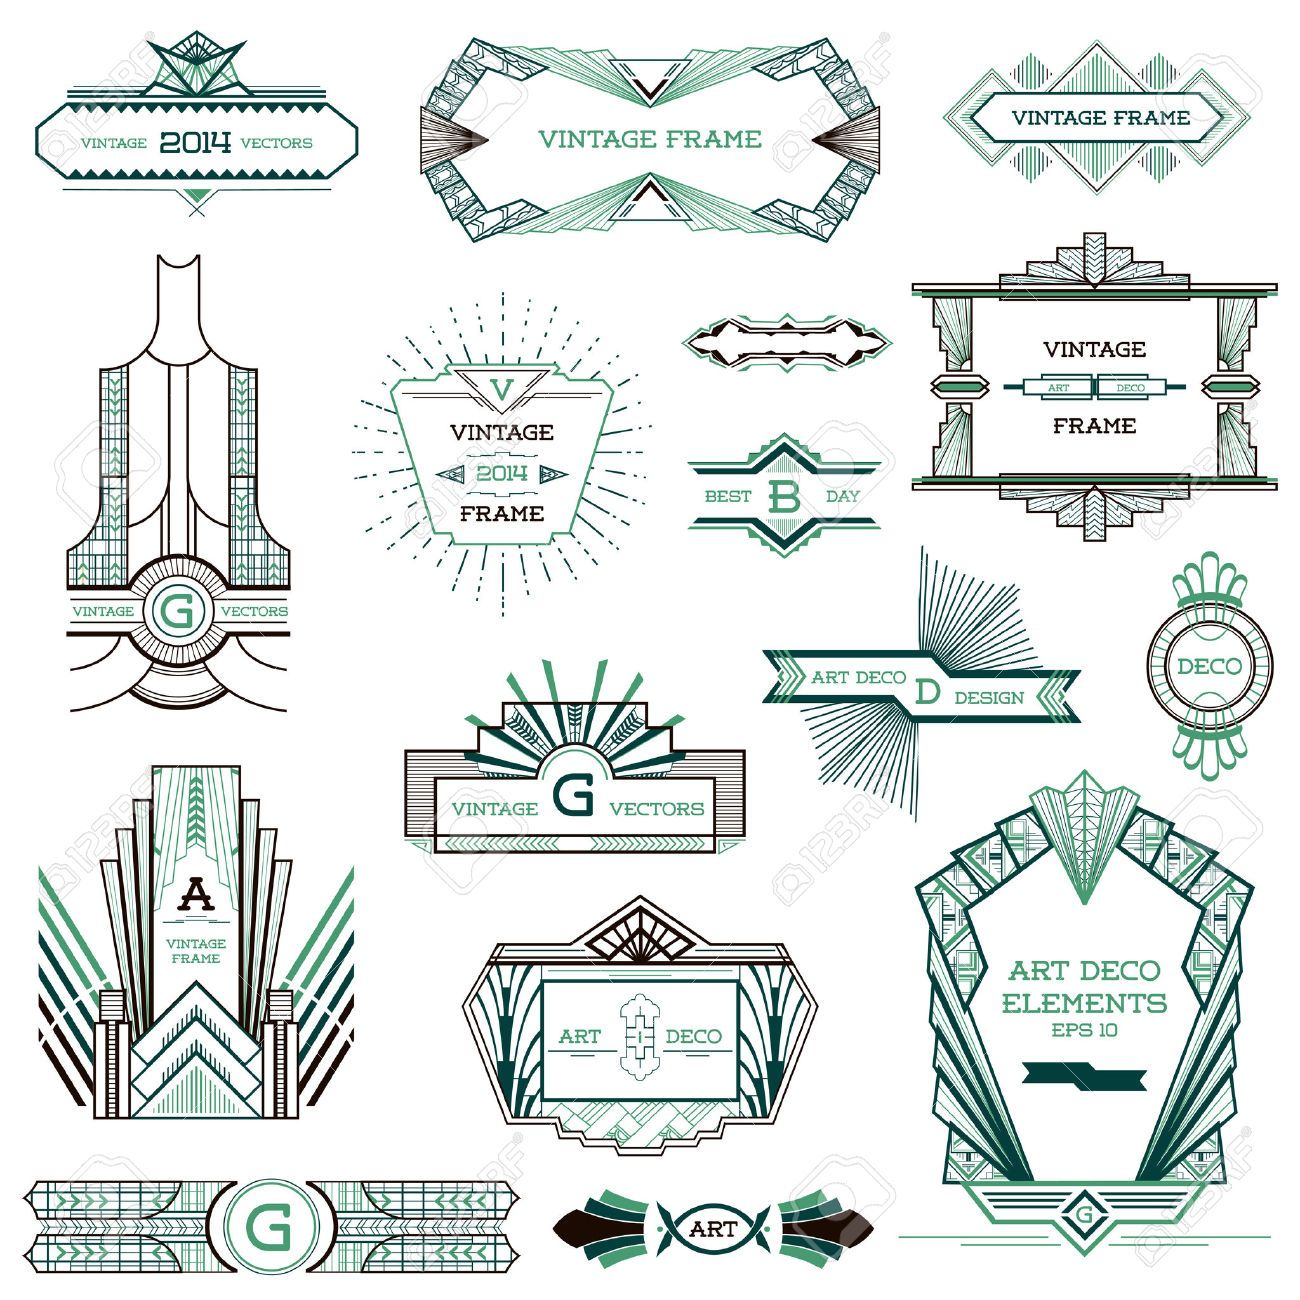 Designer Deko Art Deco Packaging Design Google Search Graphic Design